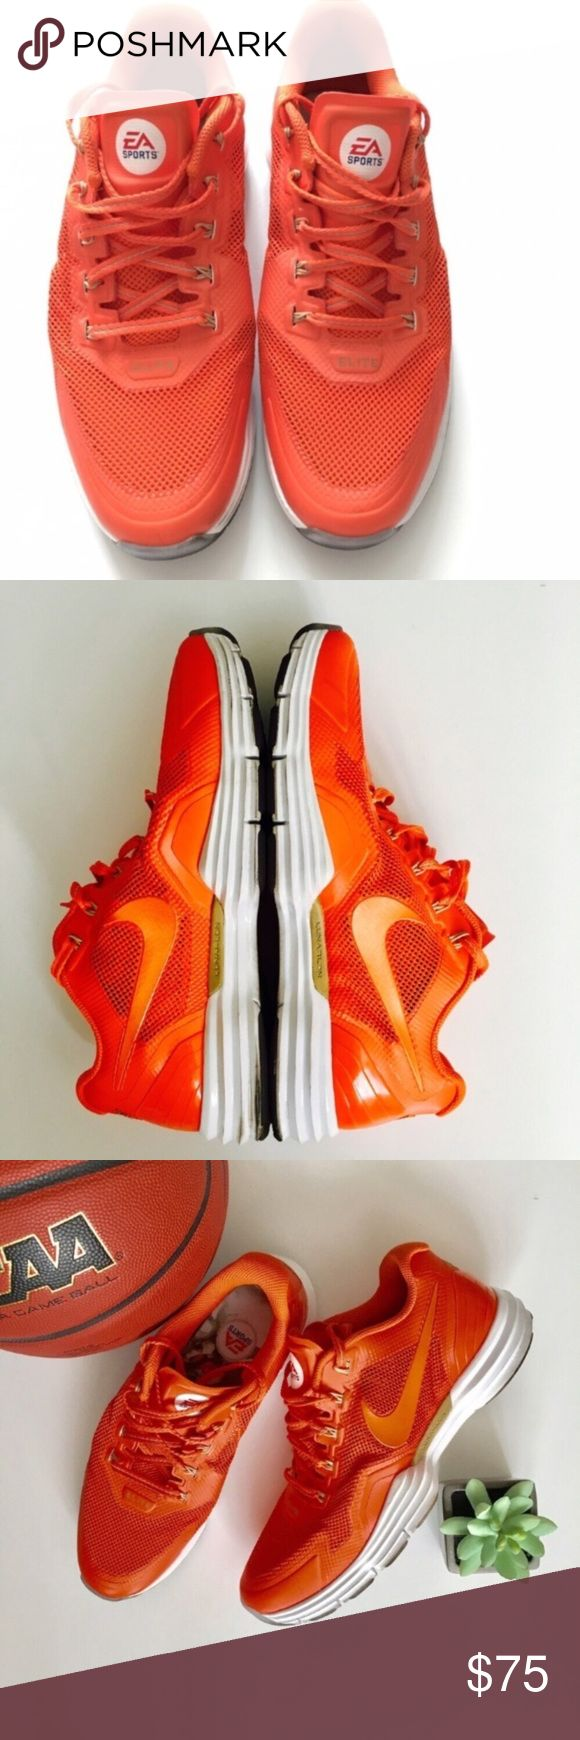 Nike Barry Sanders Nike Lunar Shoes NCAA Football Nike Barry Sanders Nike Lunar TR1 EA NCAA Football Men's Shoes  •LIMITED EDITION! Promo Shoe not sold in stores! •Light wear, but in great condition!  •Size: Men's 11  Ships same or next day from a Smoke-Free home! Nike Shoes Sneakers